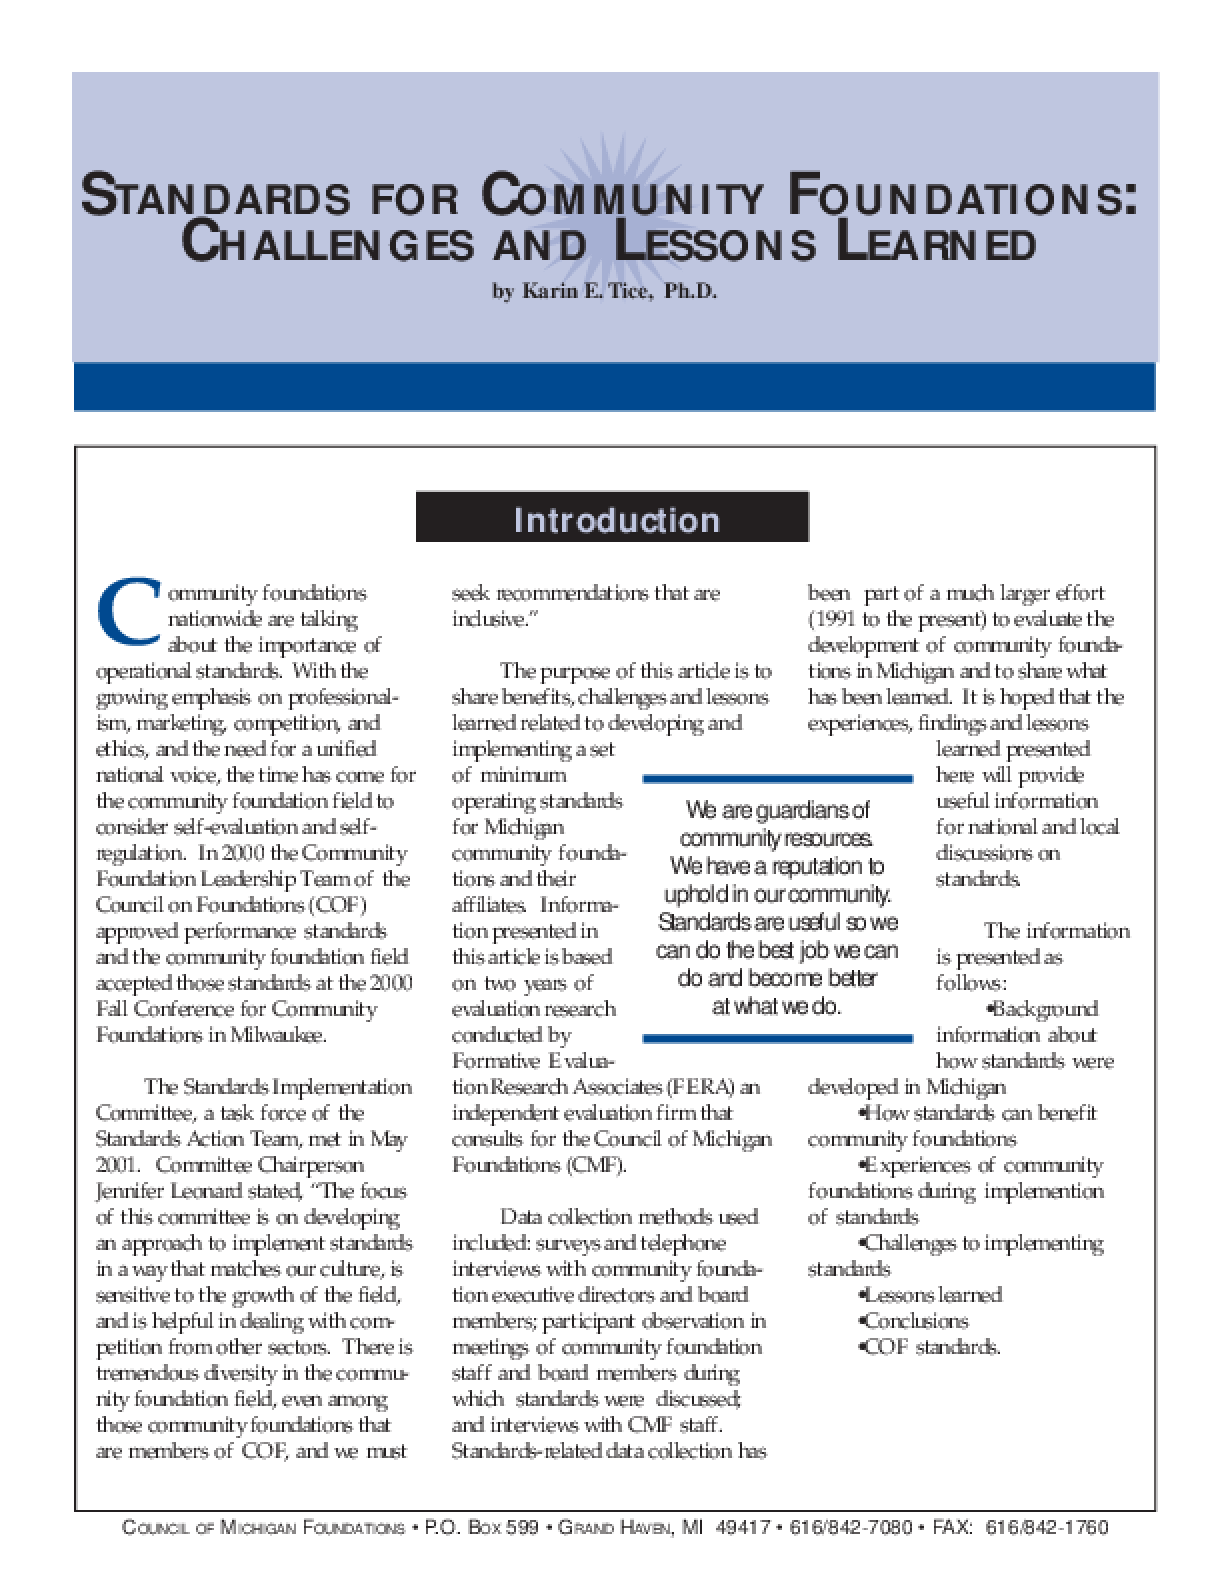 Standards for Community Foundations: Challenges and Lessons Learned